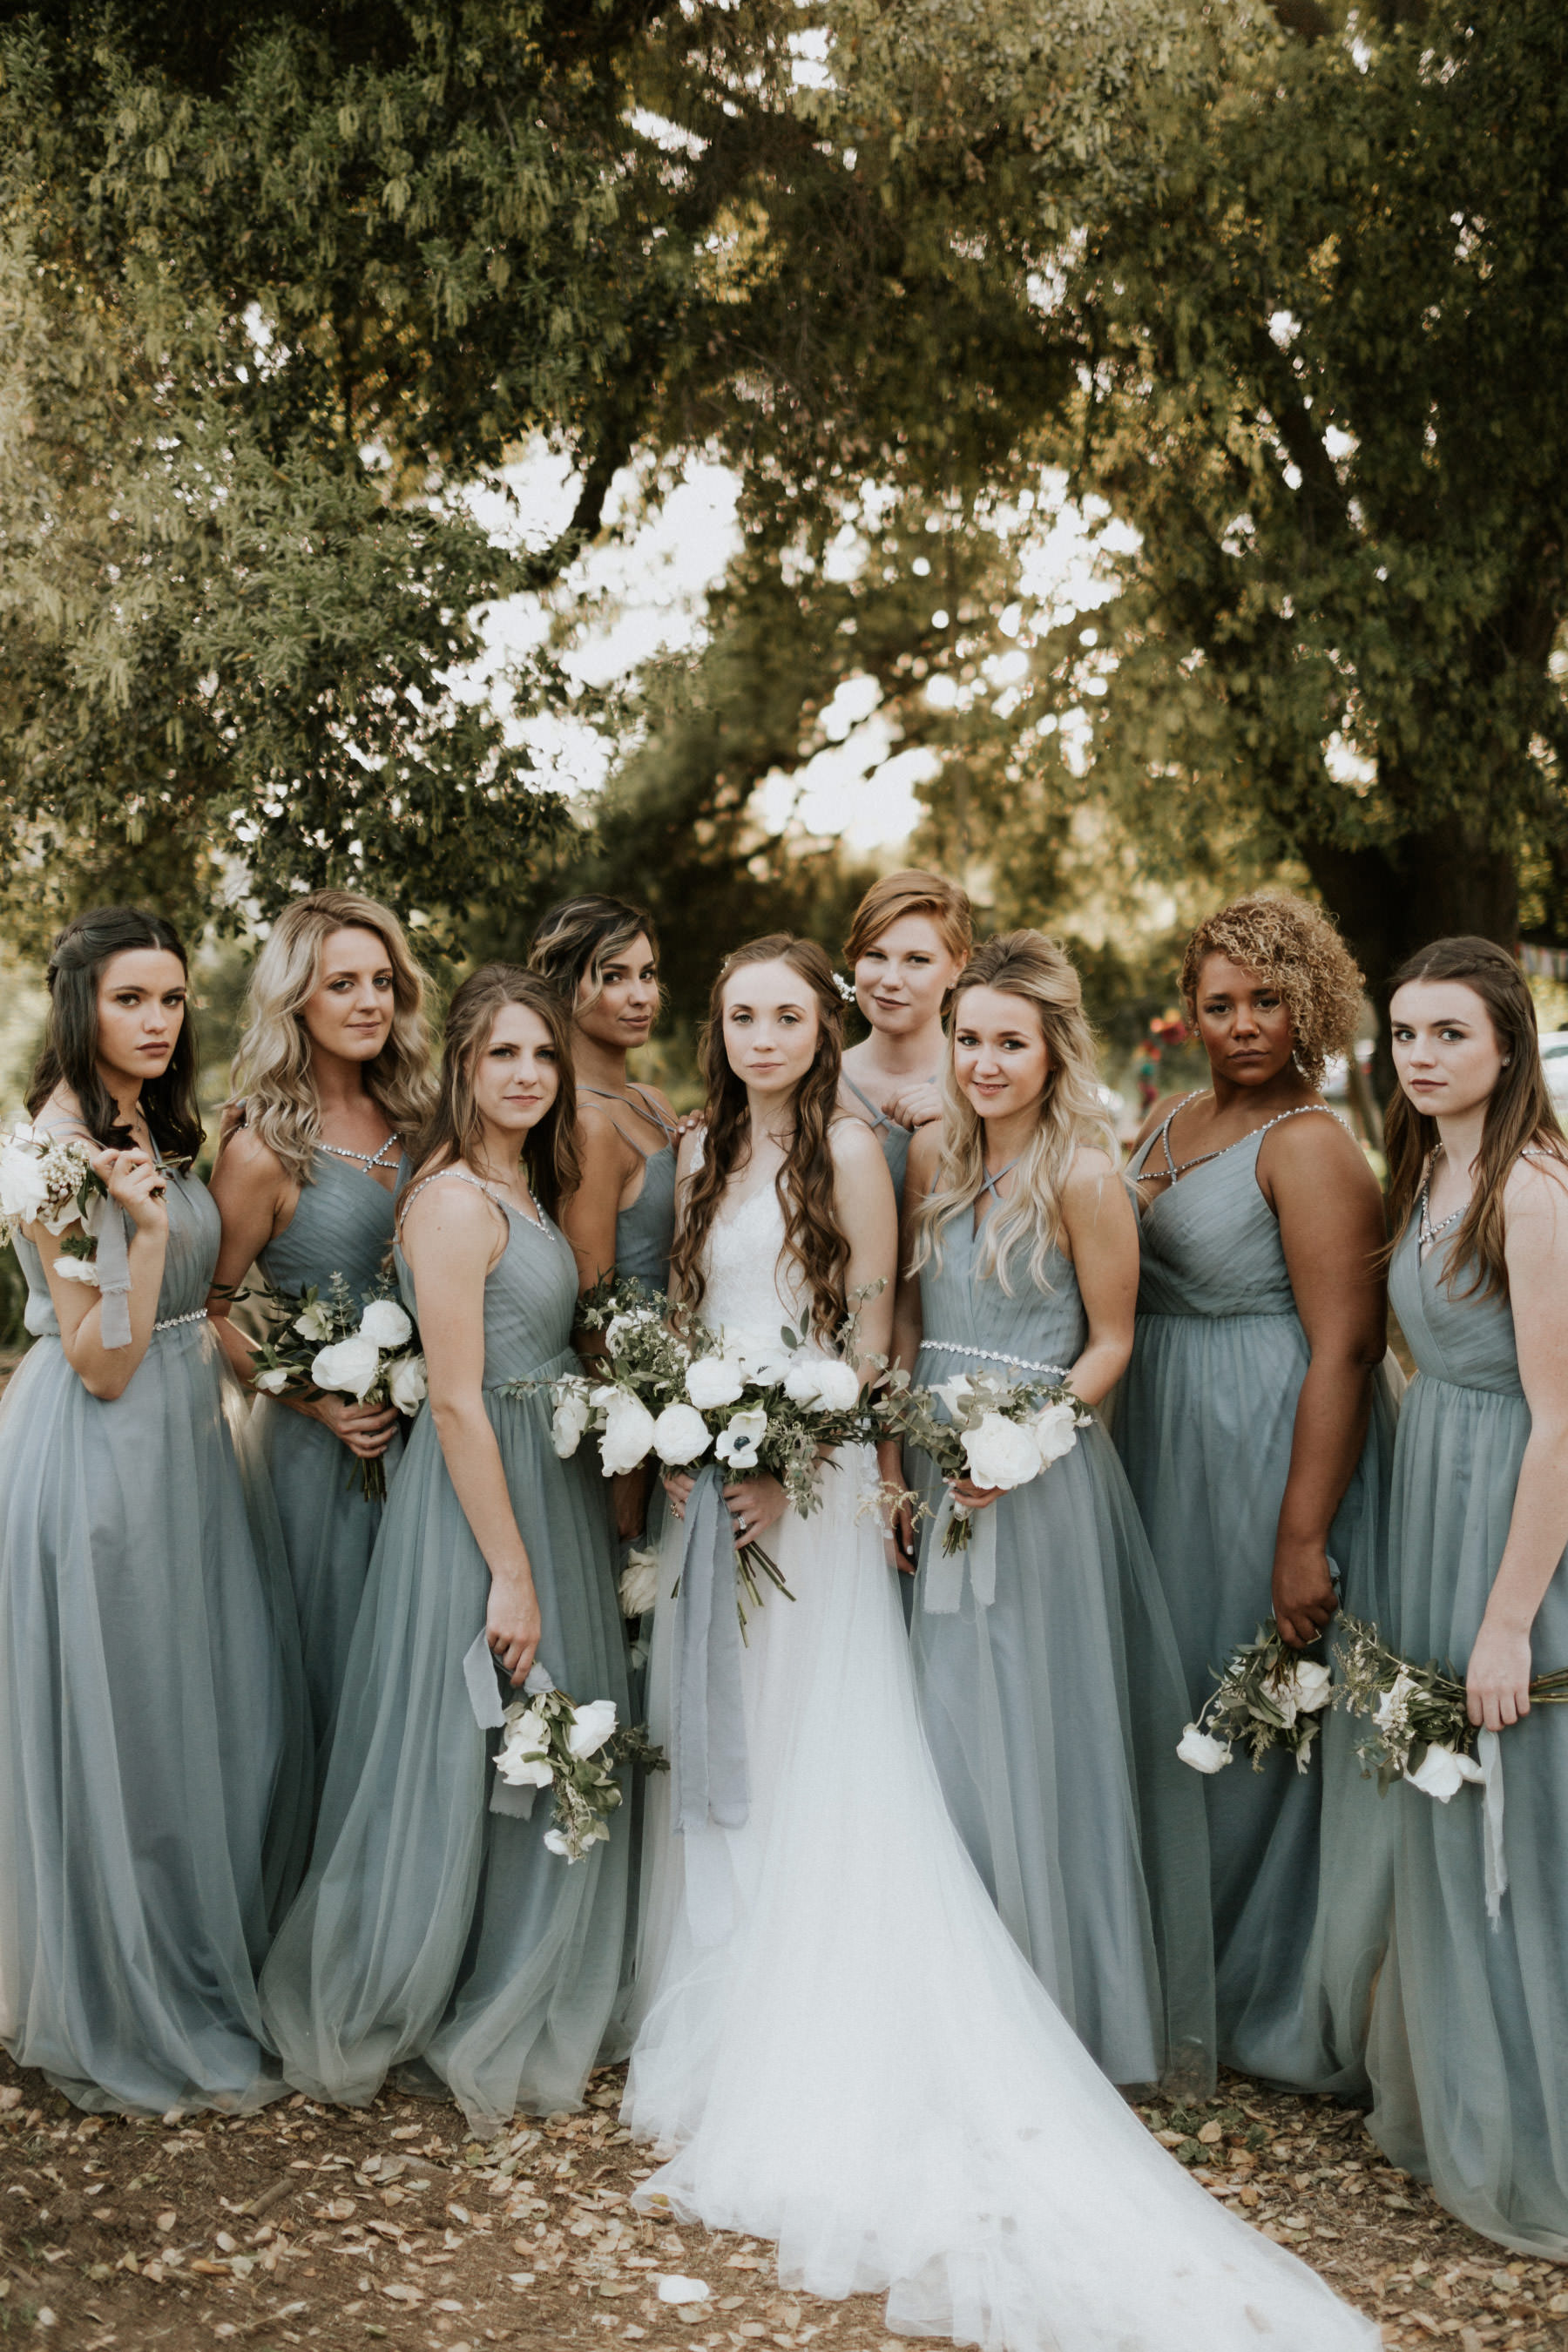 Bridesmaids in dusty blue maxi dresses and bride in BHLDN